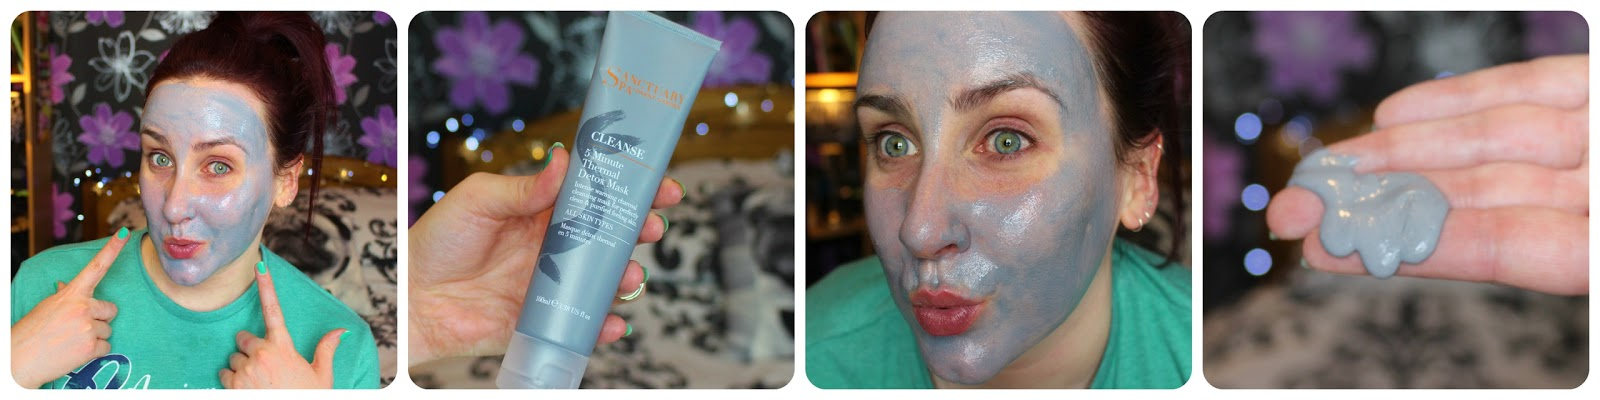 Sanctuary Spa 5 Minute Thermal Detox Mask Review